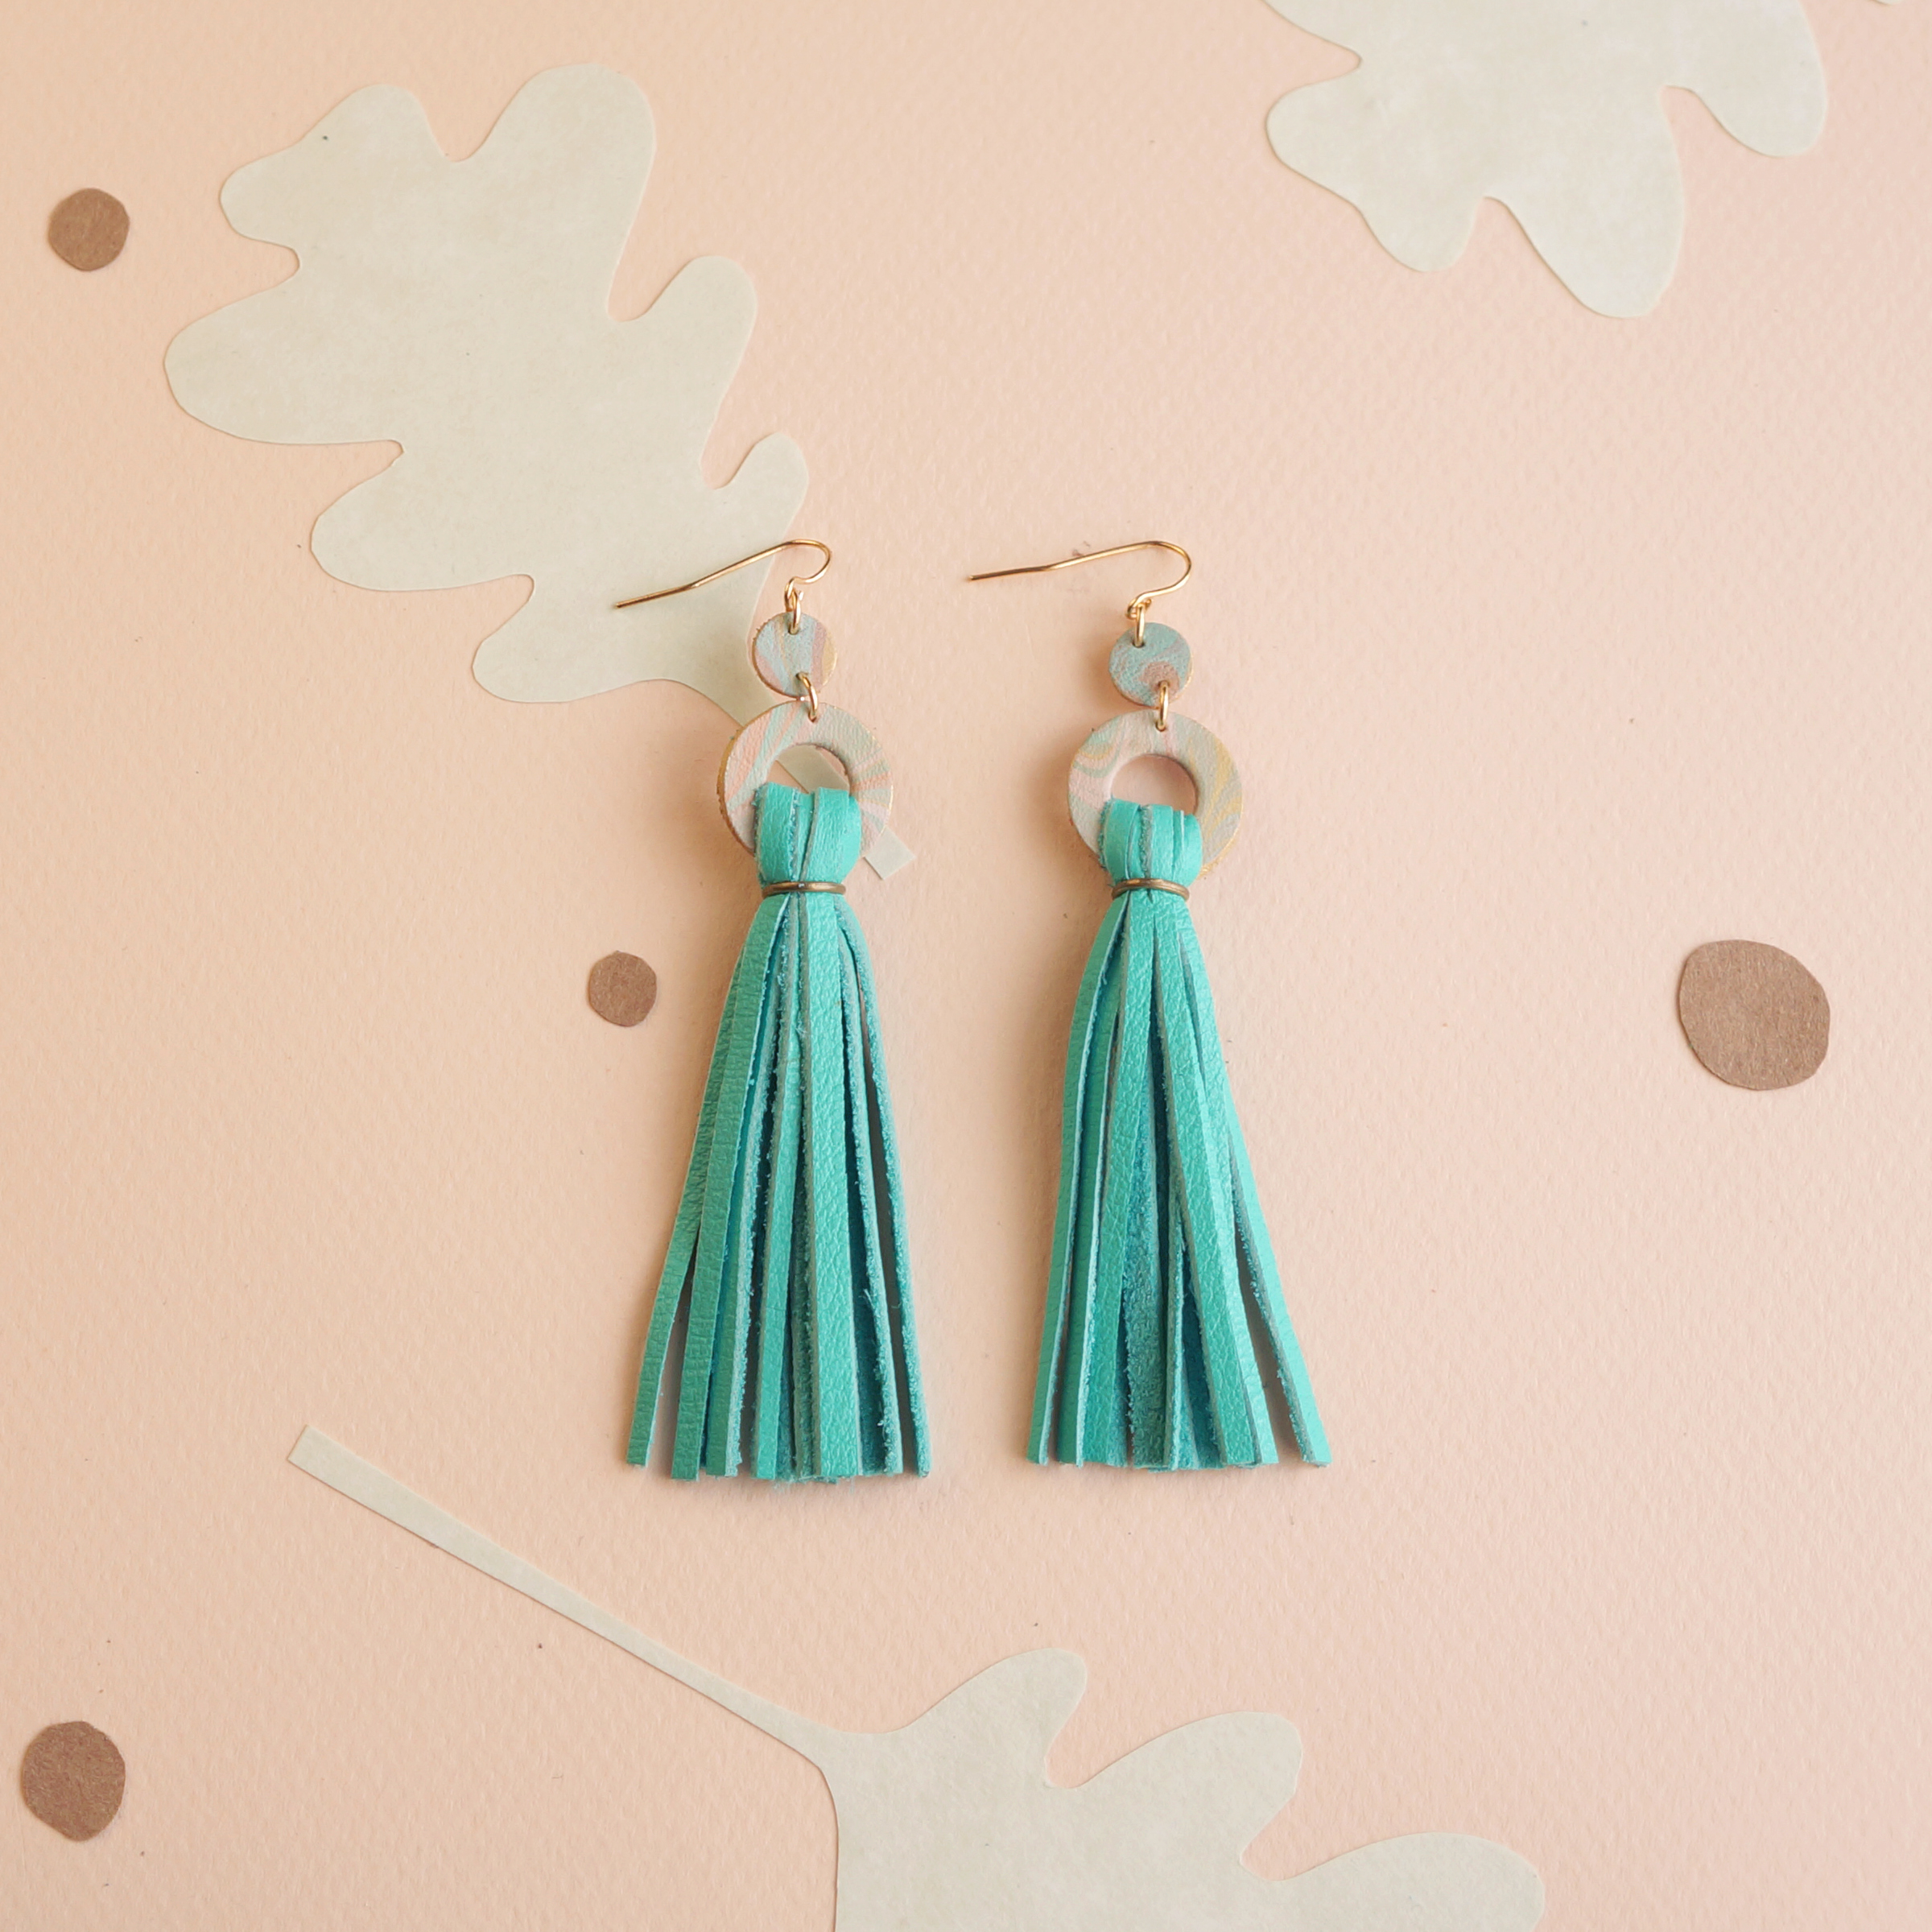 Patterned Circle Tassels